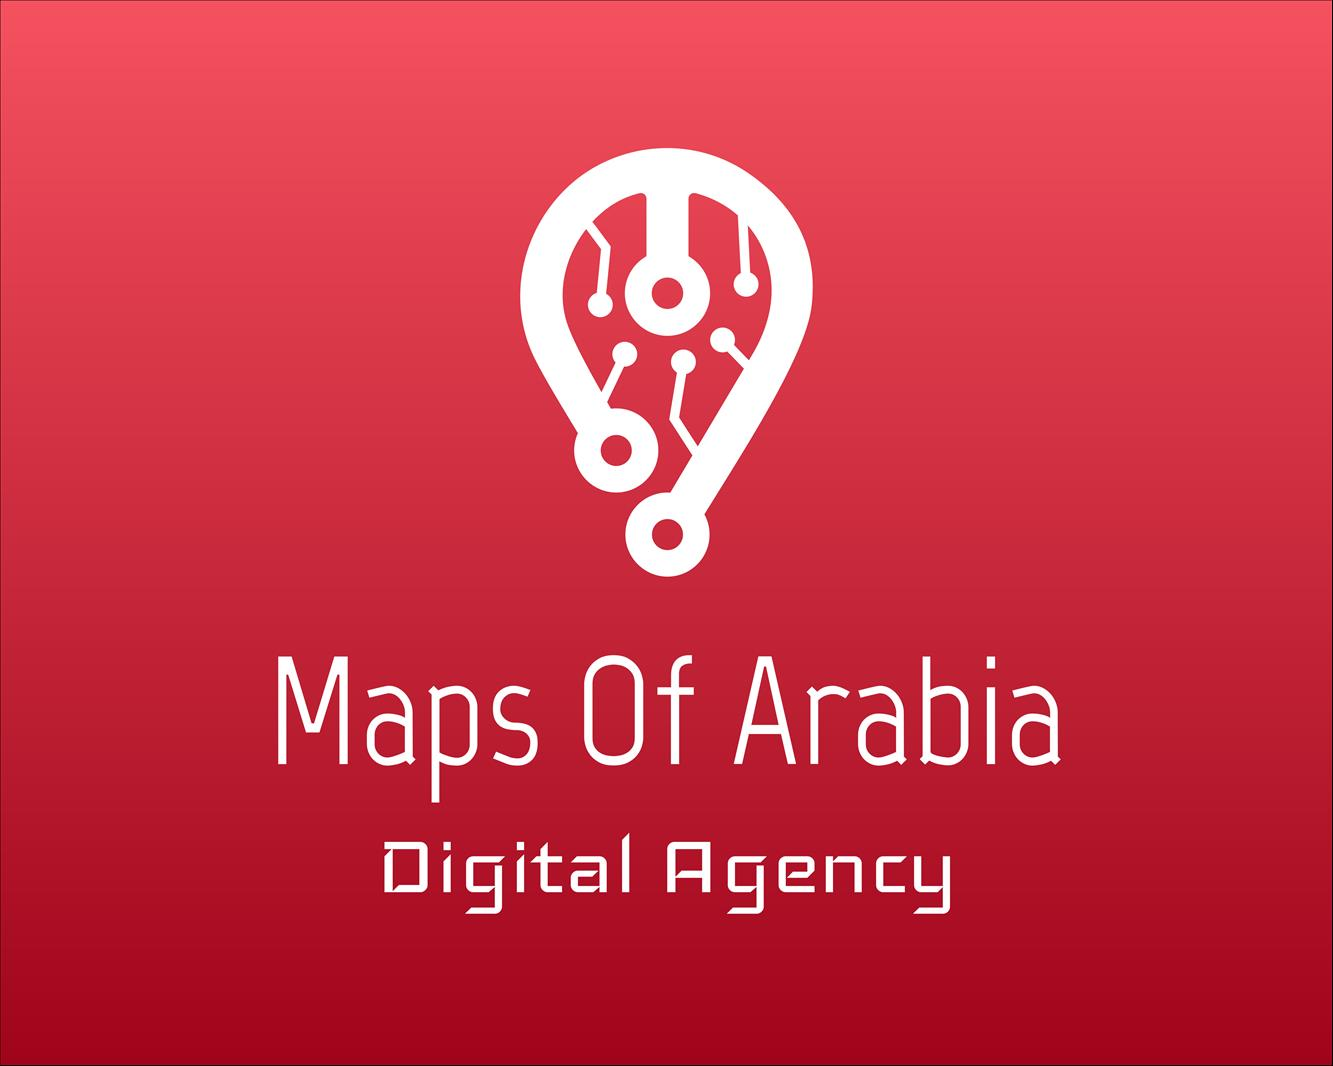 Bilingual Arabic Seo Services Team Applies English Seo Concepts To Arabic Content Menafn Com